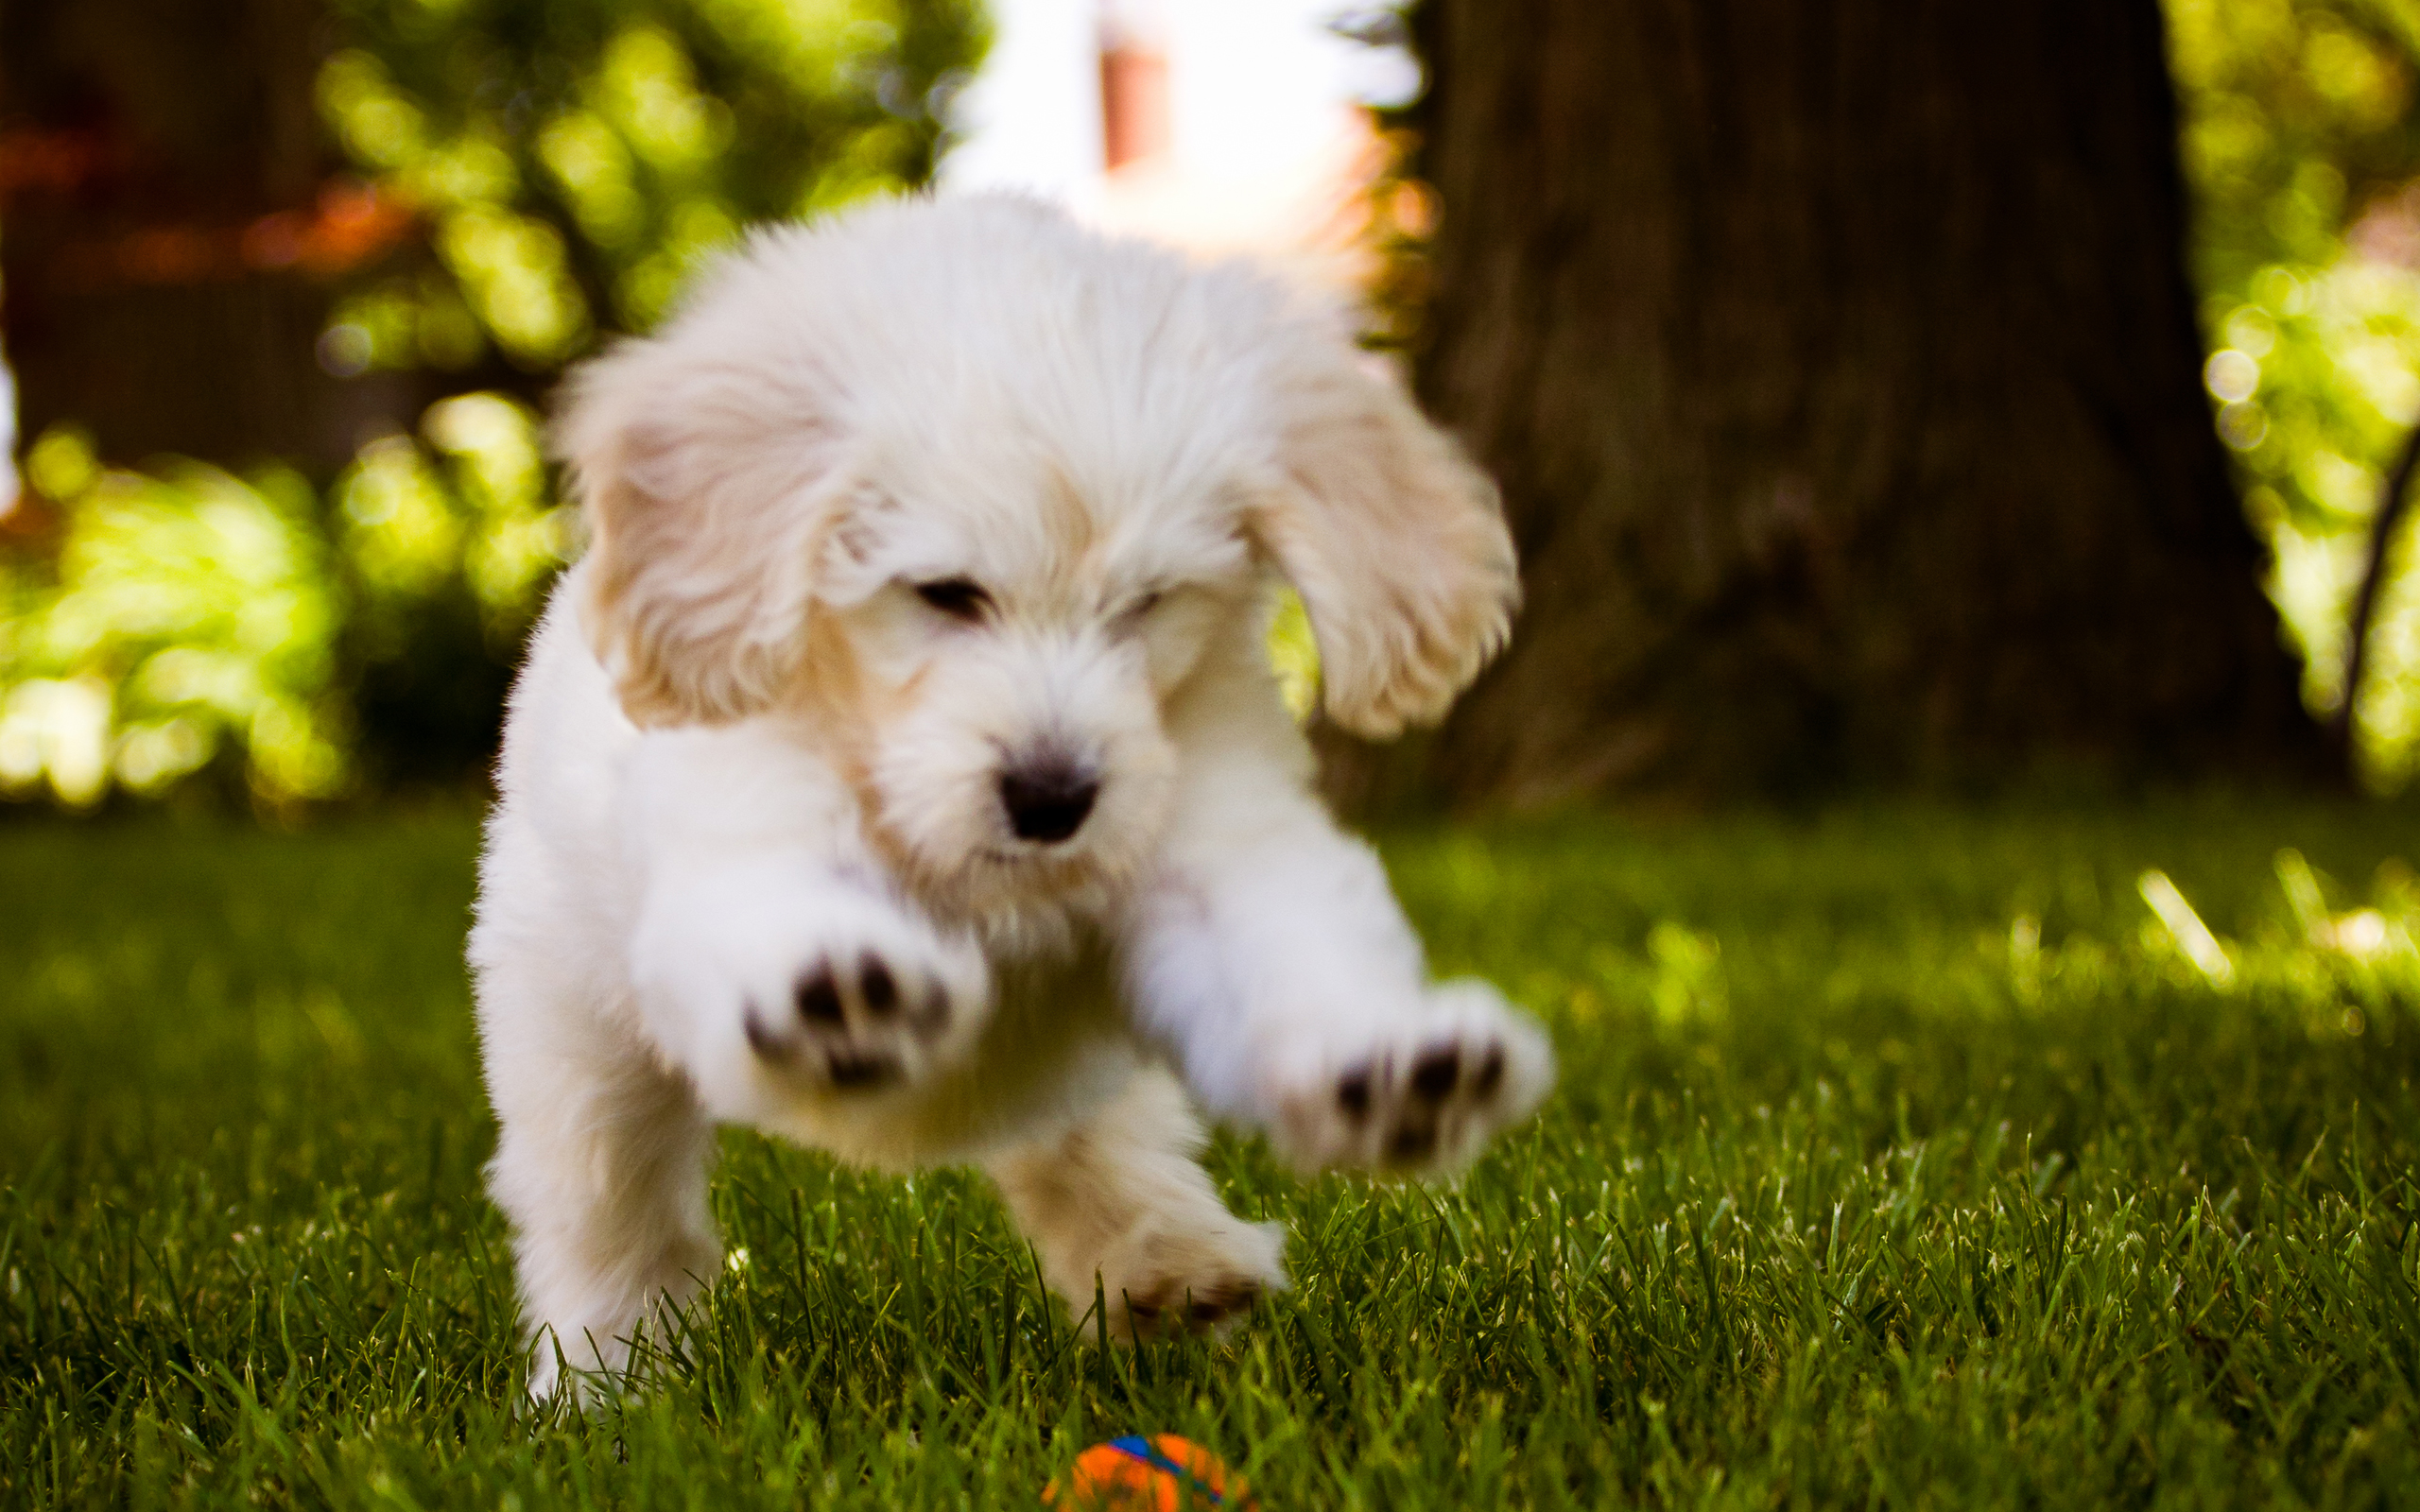 Cute Puppies Wallpapers With Quotes Dog Wallpaper Running Ball 10473 Wallpaper Walldiskpaper